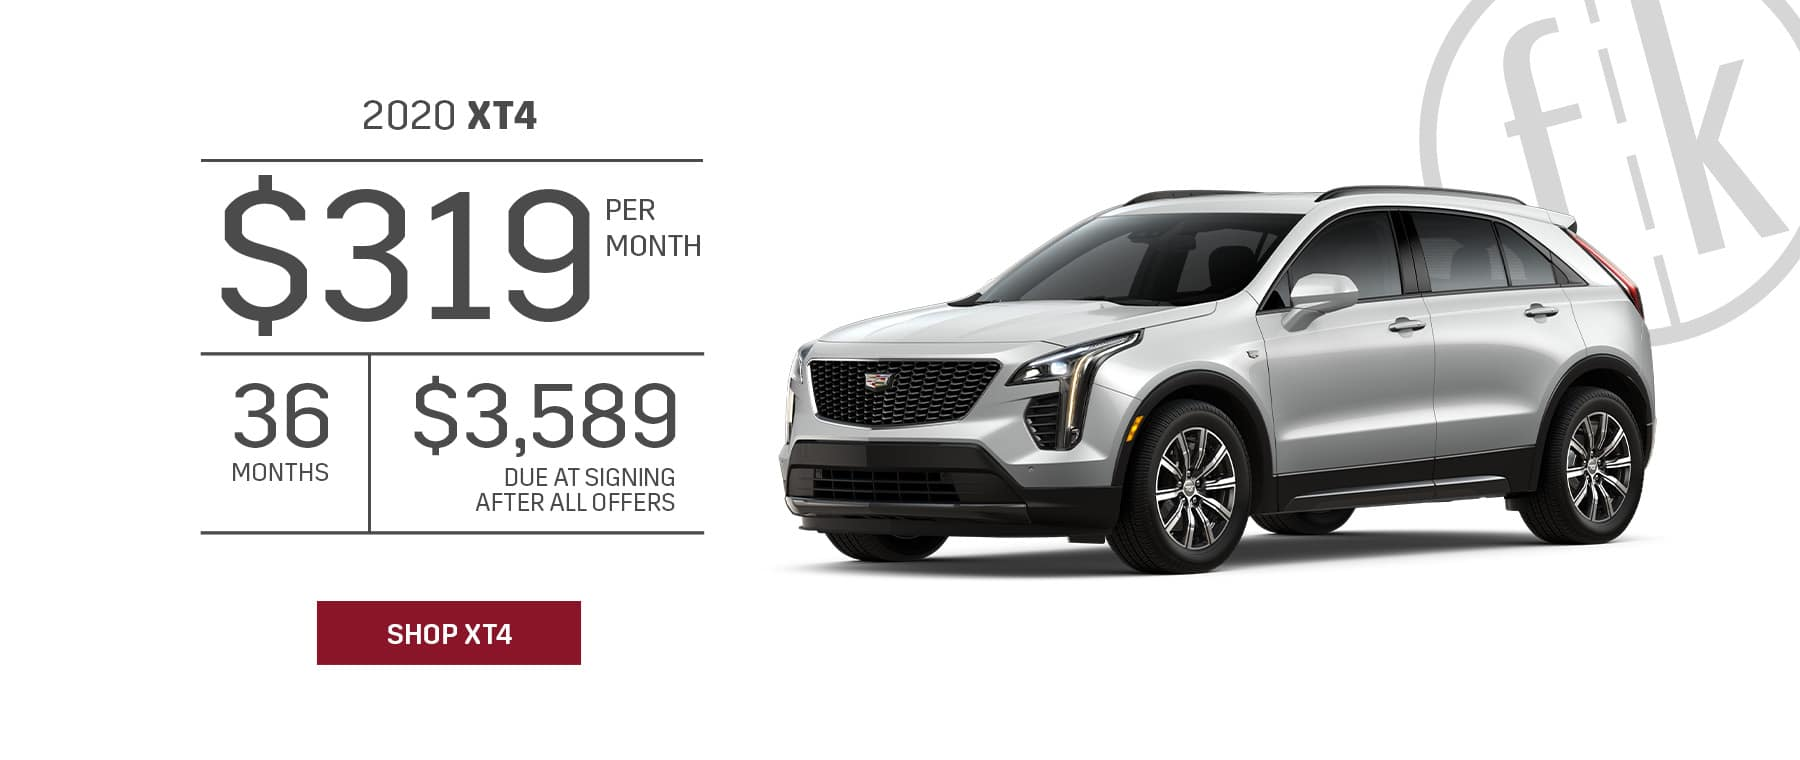 2020 XT4 1SB FWD $319/mo for 36 mos. with $3,589 DAS